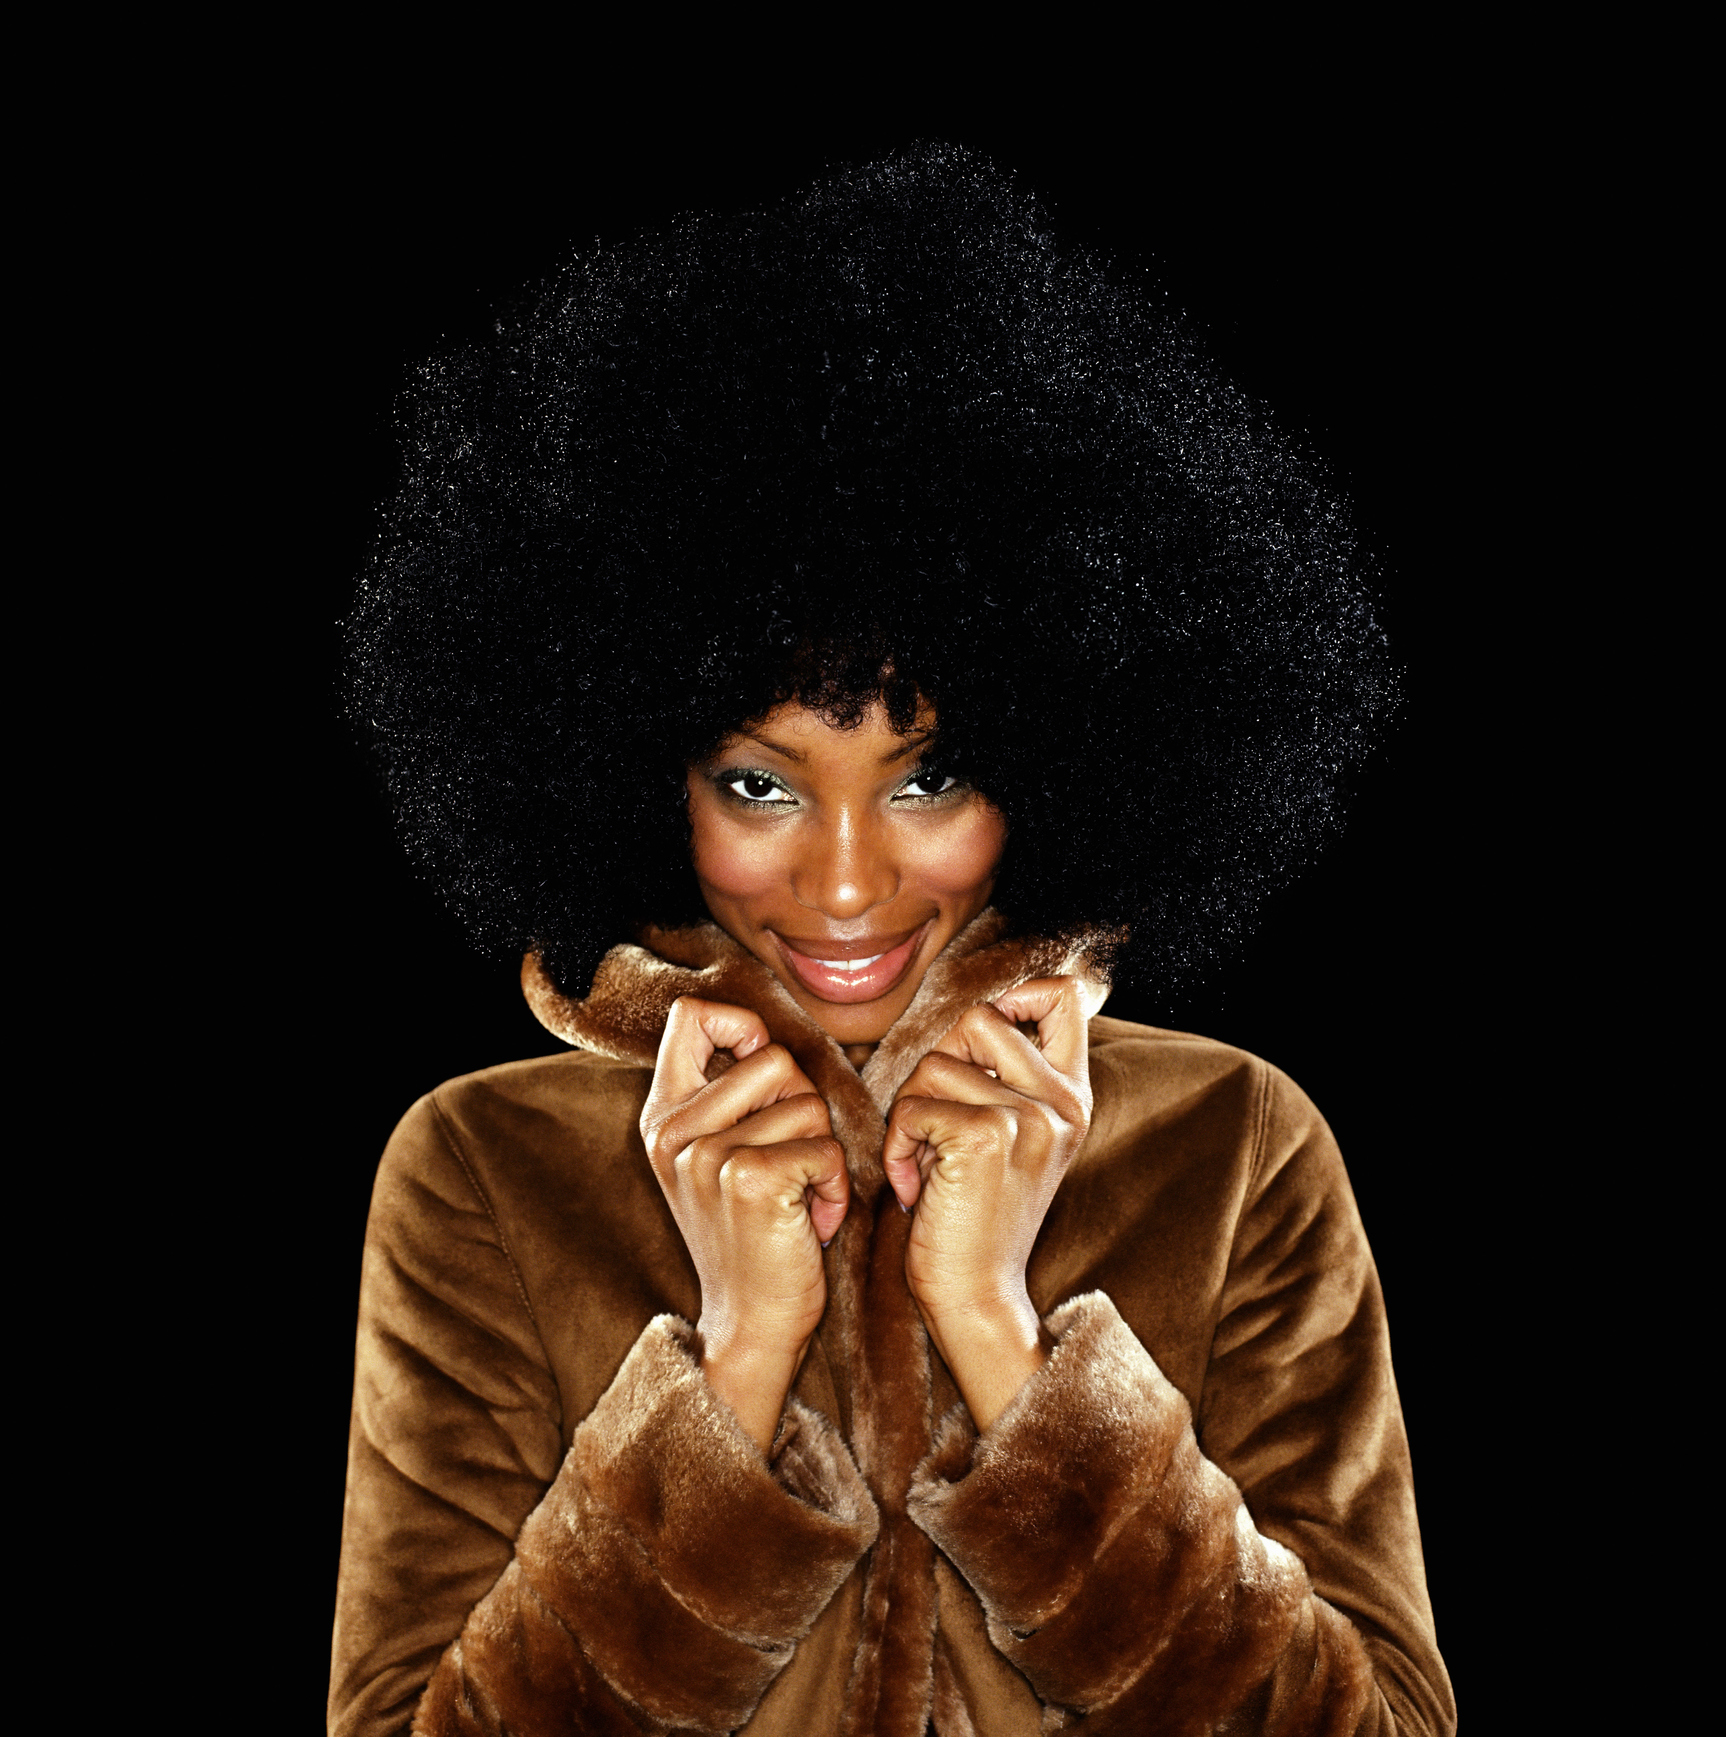 Young woman in fur coat with afro